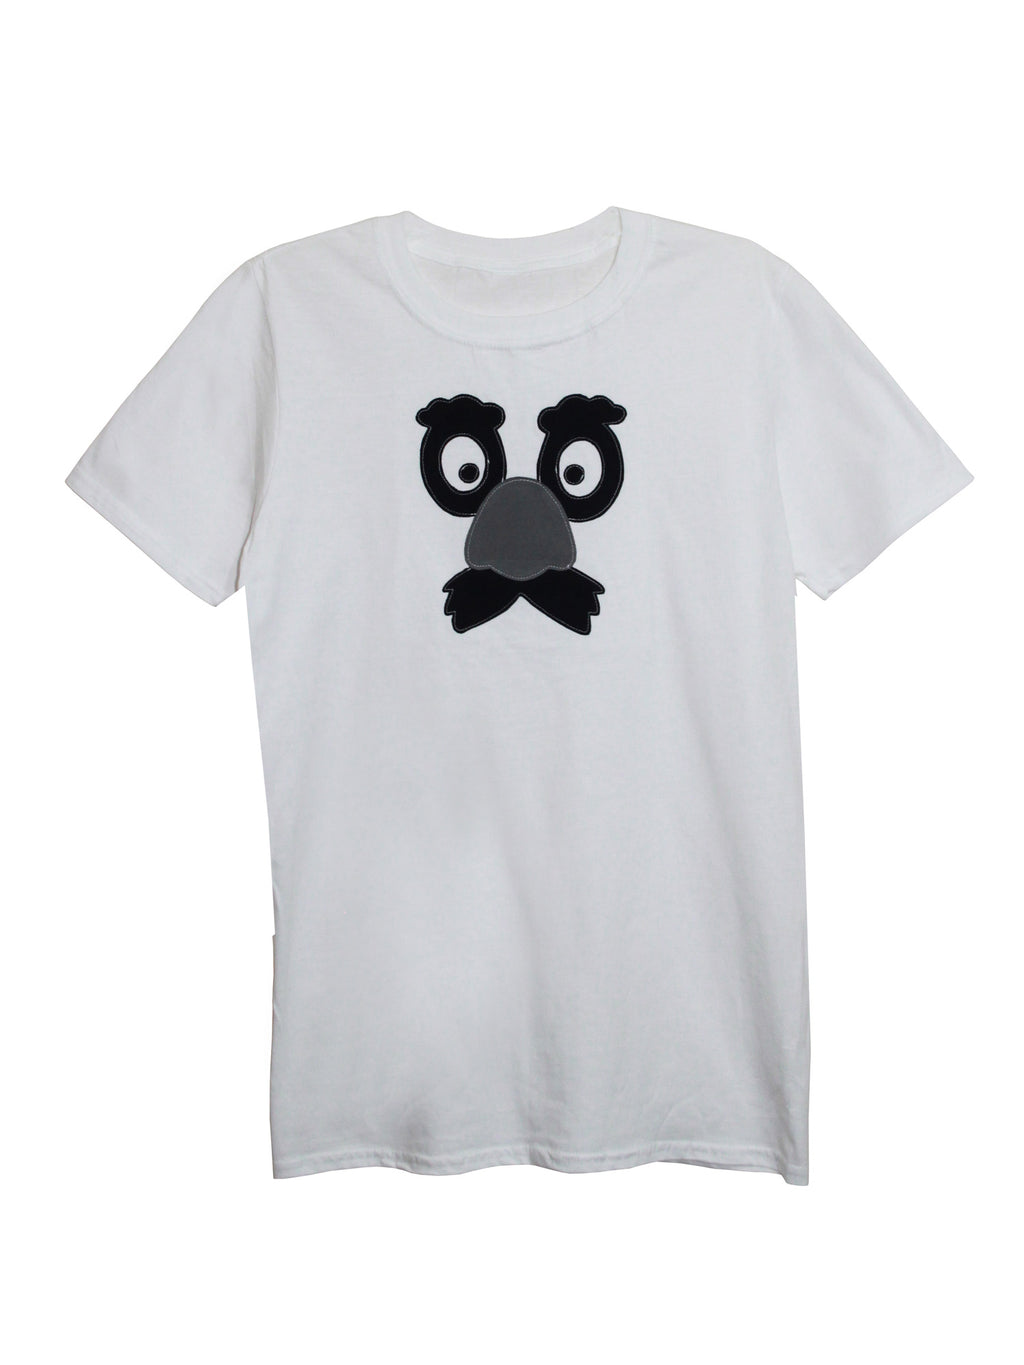 Men's White Grouchy Face T Shirt by Not For Ponies